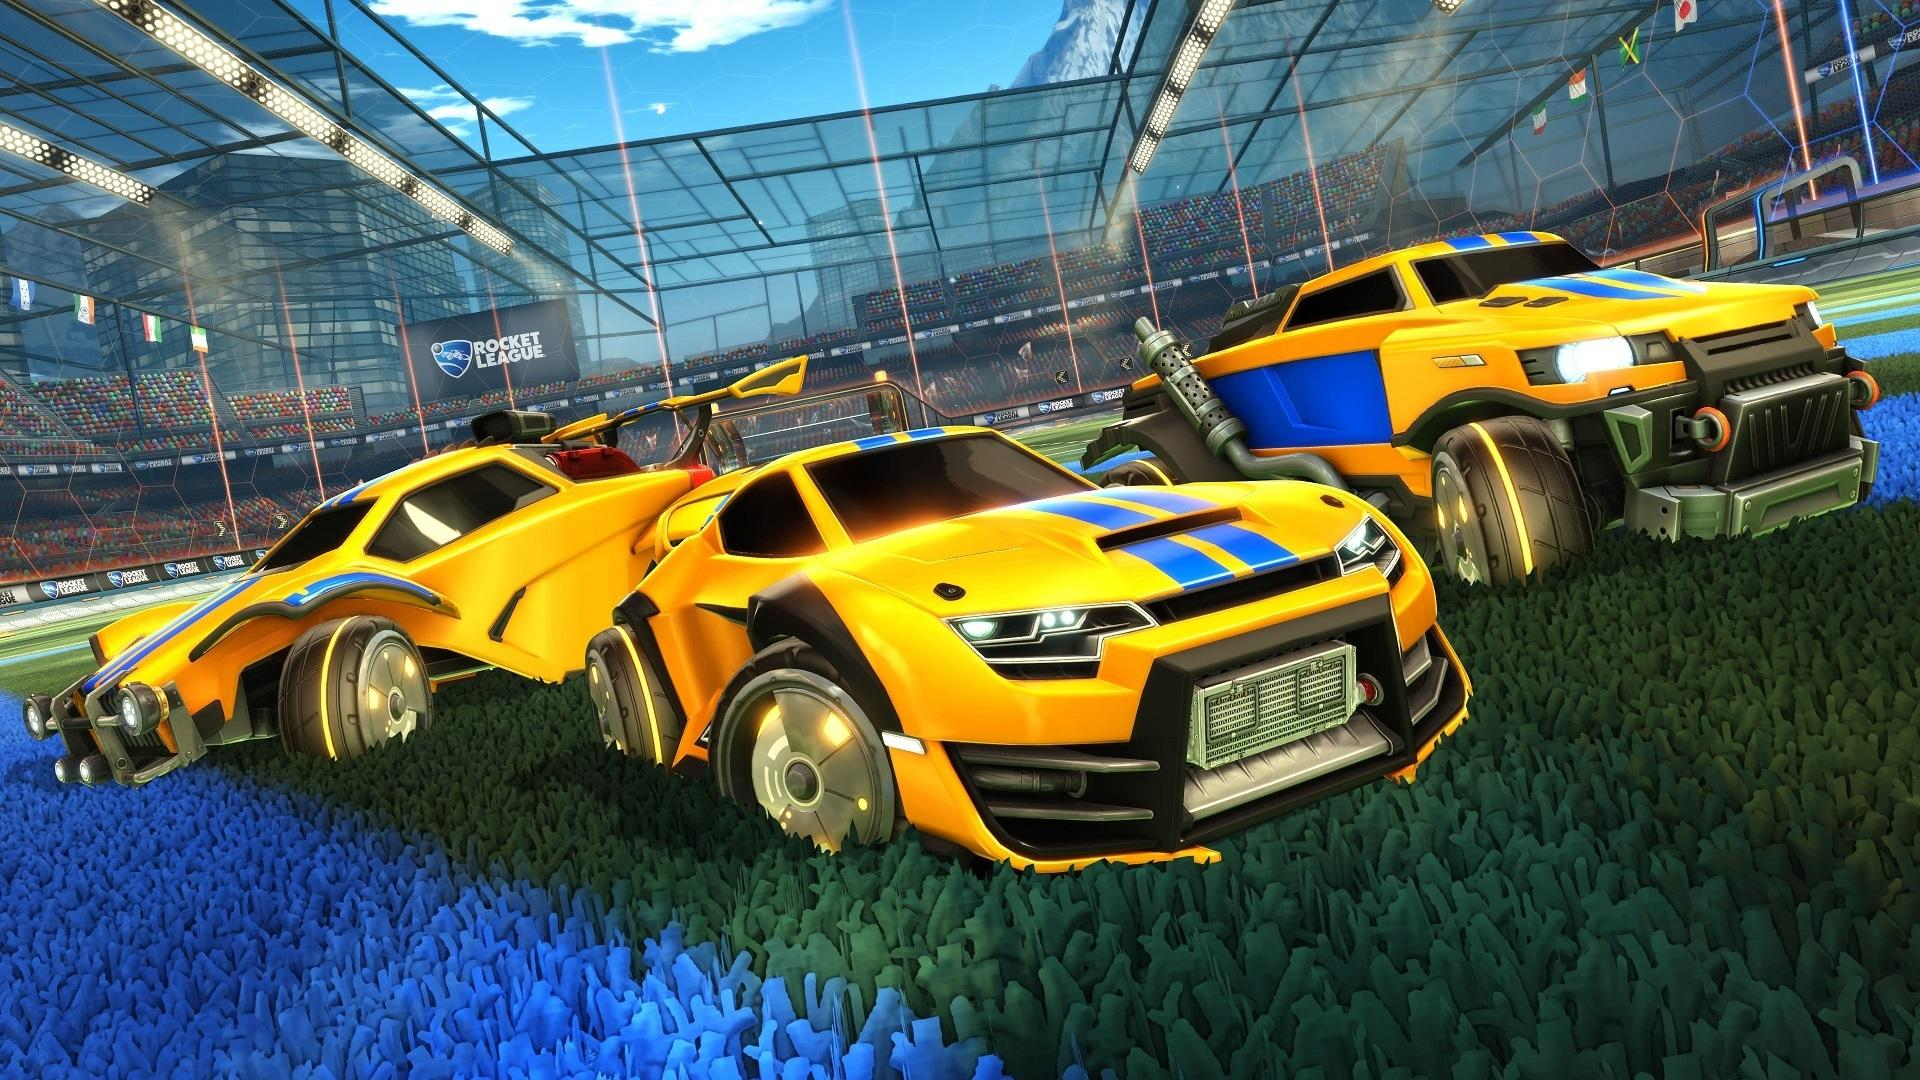 Rocket League players have scored 29 billion goals and oh my god will someone play defense